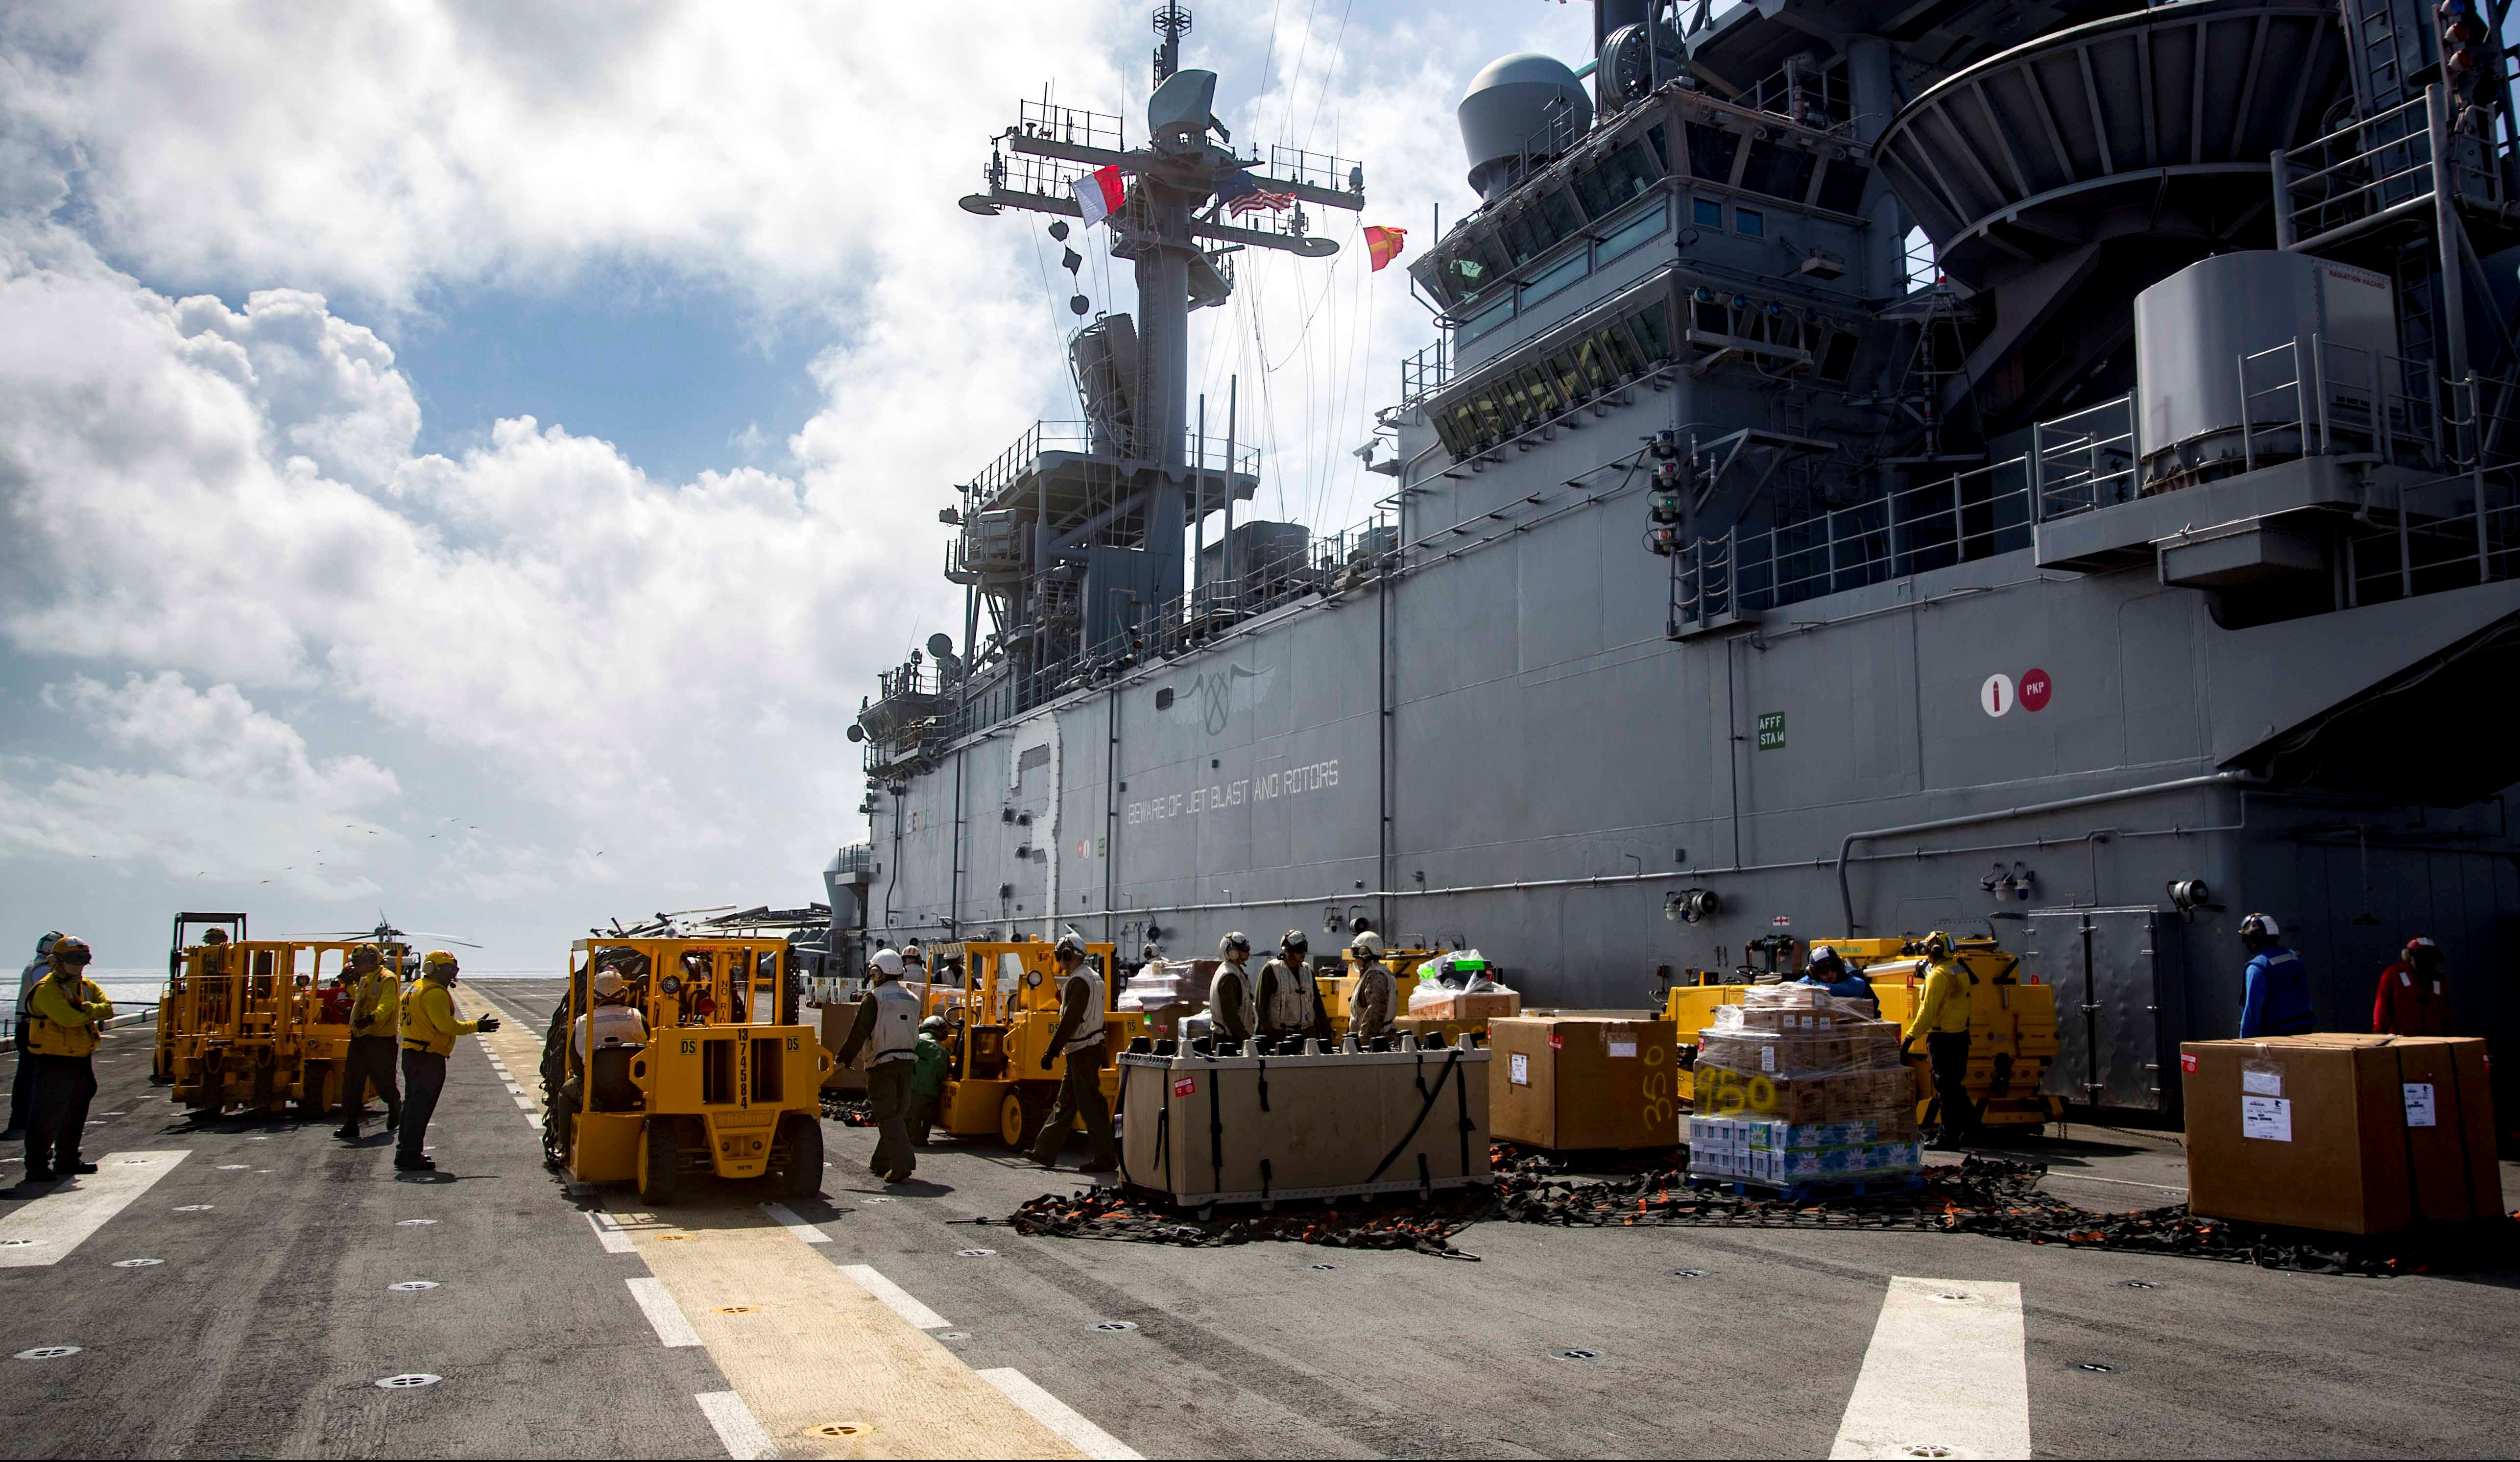 Sailors aboard the amphibious assault ship USS Kearsarge (LHD 3) move pallets of supplies on the flight deck during a replenishment-at-sea with the fast combat support ship USNS Supply (T-AOE 6) for relief efforts in the aftermath of Hurricane Maria in Puerto Rico on September 28, 2017. Picture taken on September 28, 2017. Courtesy Ryre Arciaga/U.S. Navy/Handout via REUTERS ATTENTION EDITORS - THIS IMAGE HAS BEEN SUPPLIED BY A THIRD PARTY. - RC1F885AD890